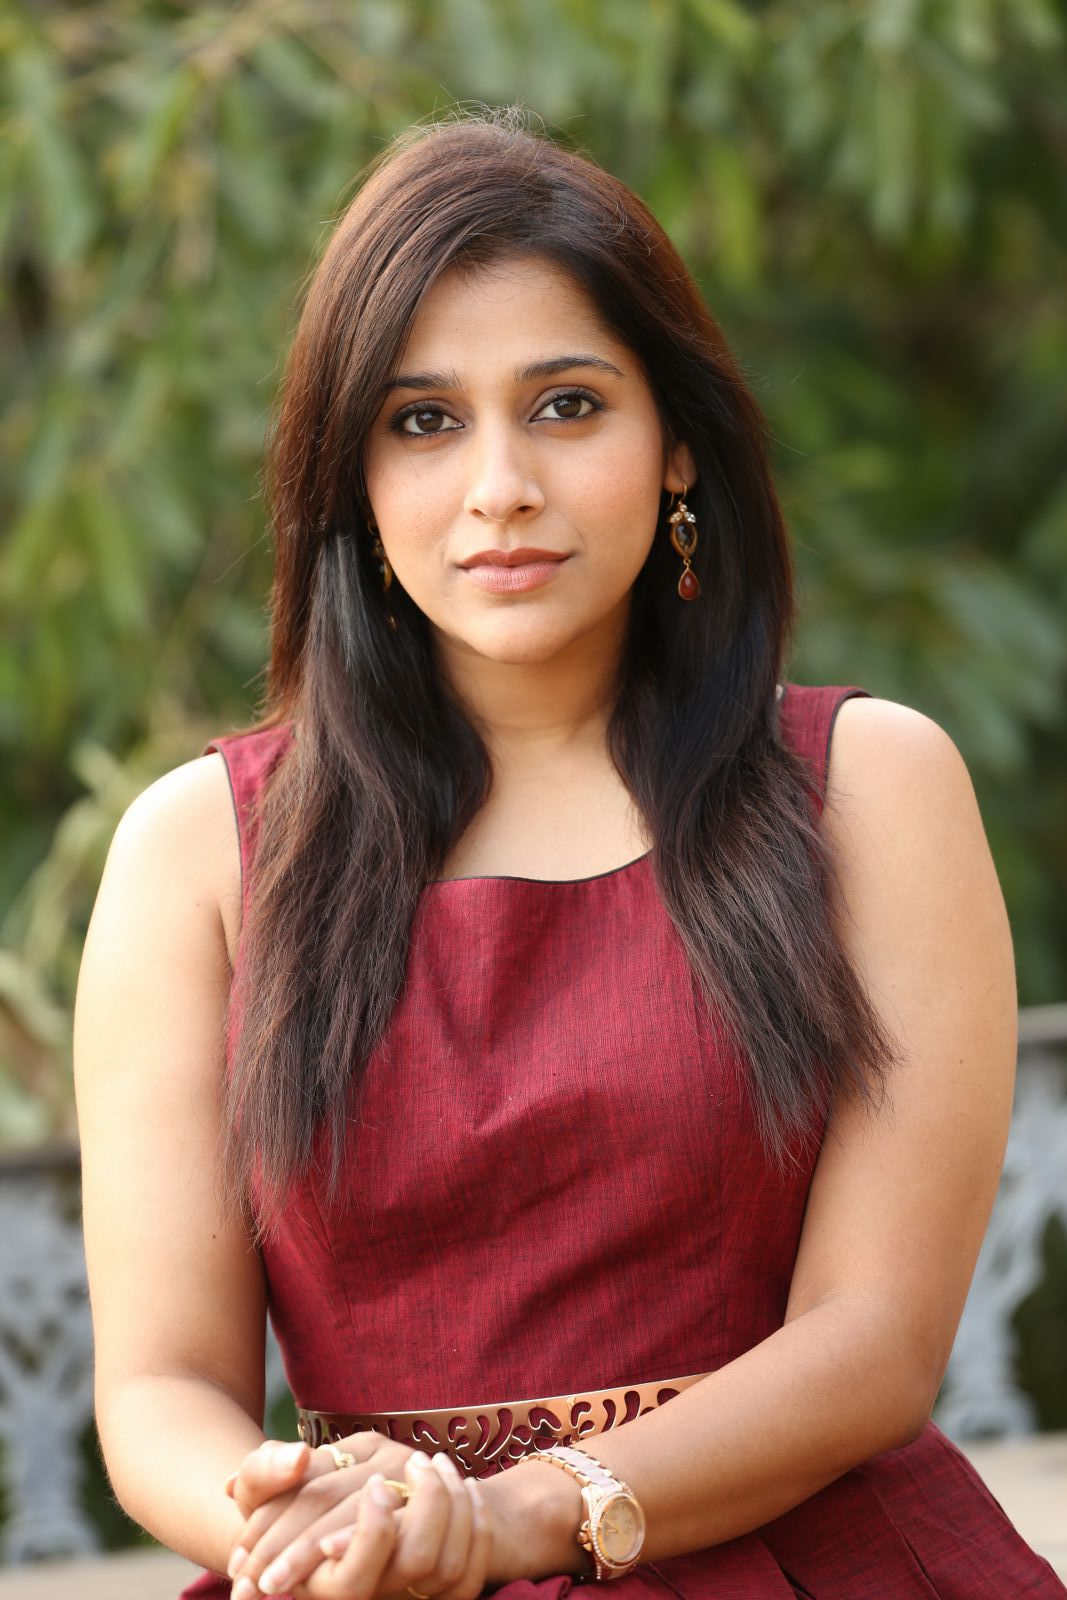 rashmi gautam Rashmi Gautam Sizzles In Her Brand New Outfit | Movie Business Rashmi Hot Pics 345